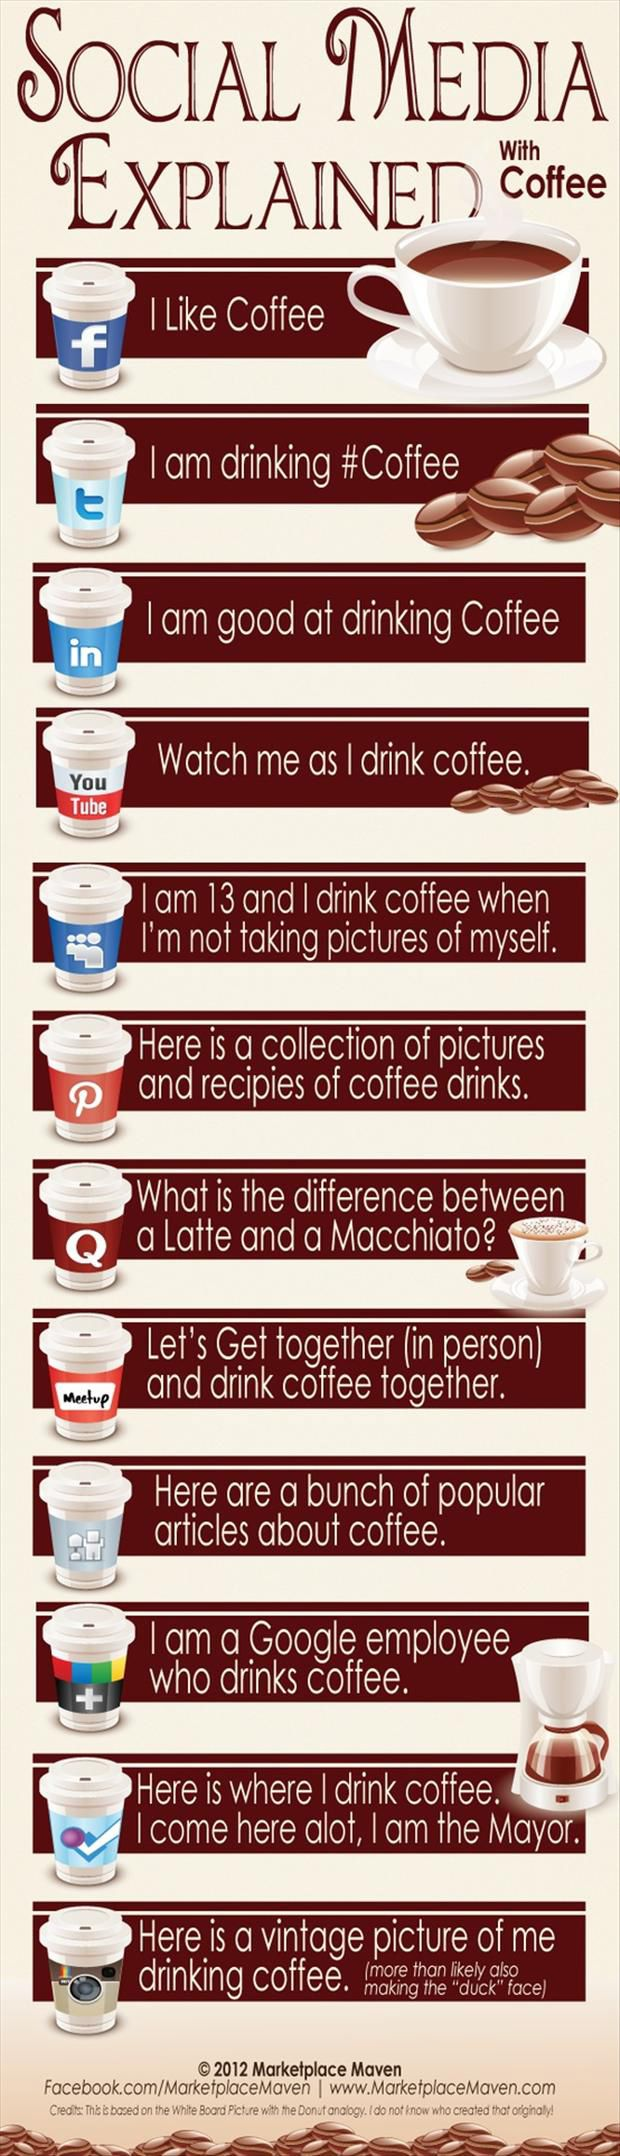 Social Media Explained With Coffee – Infographic